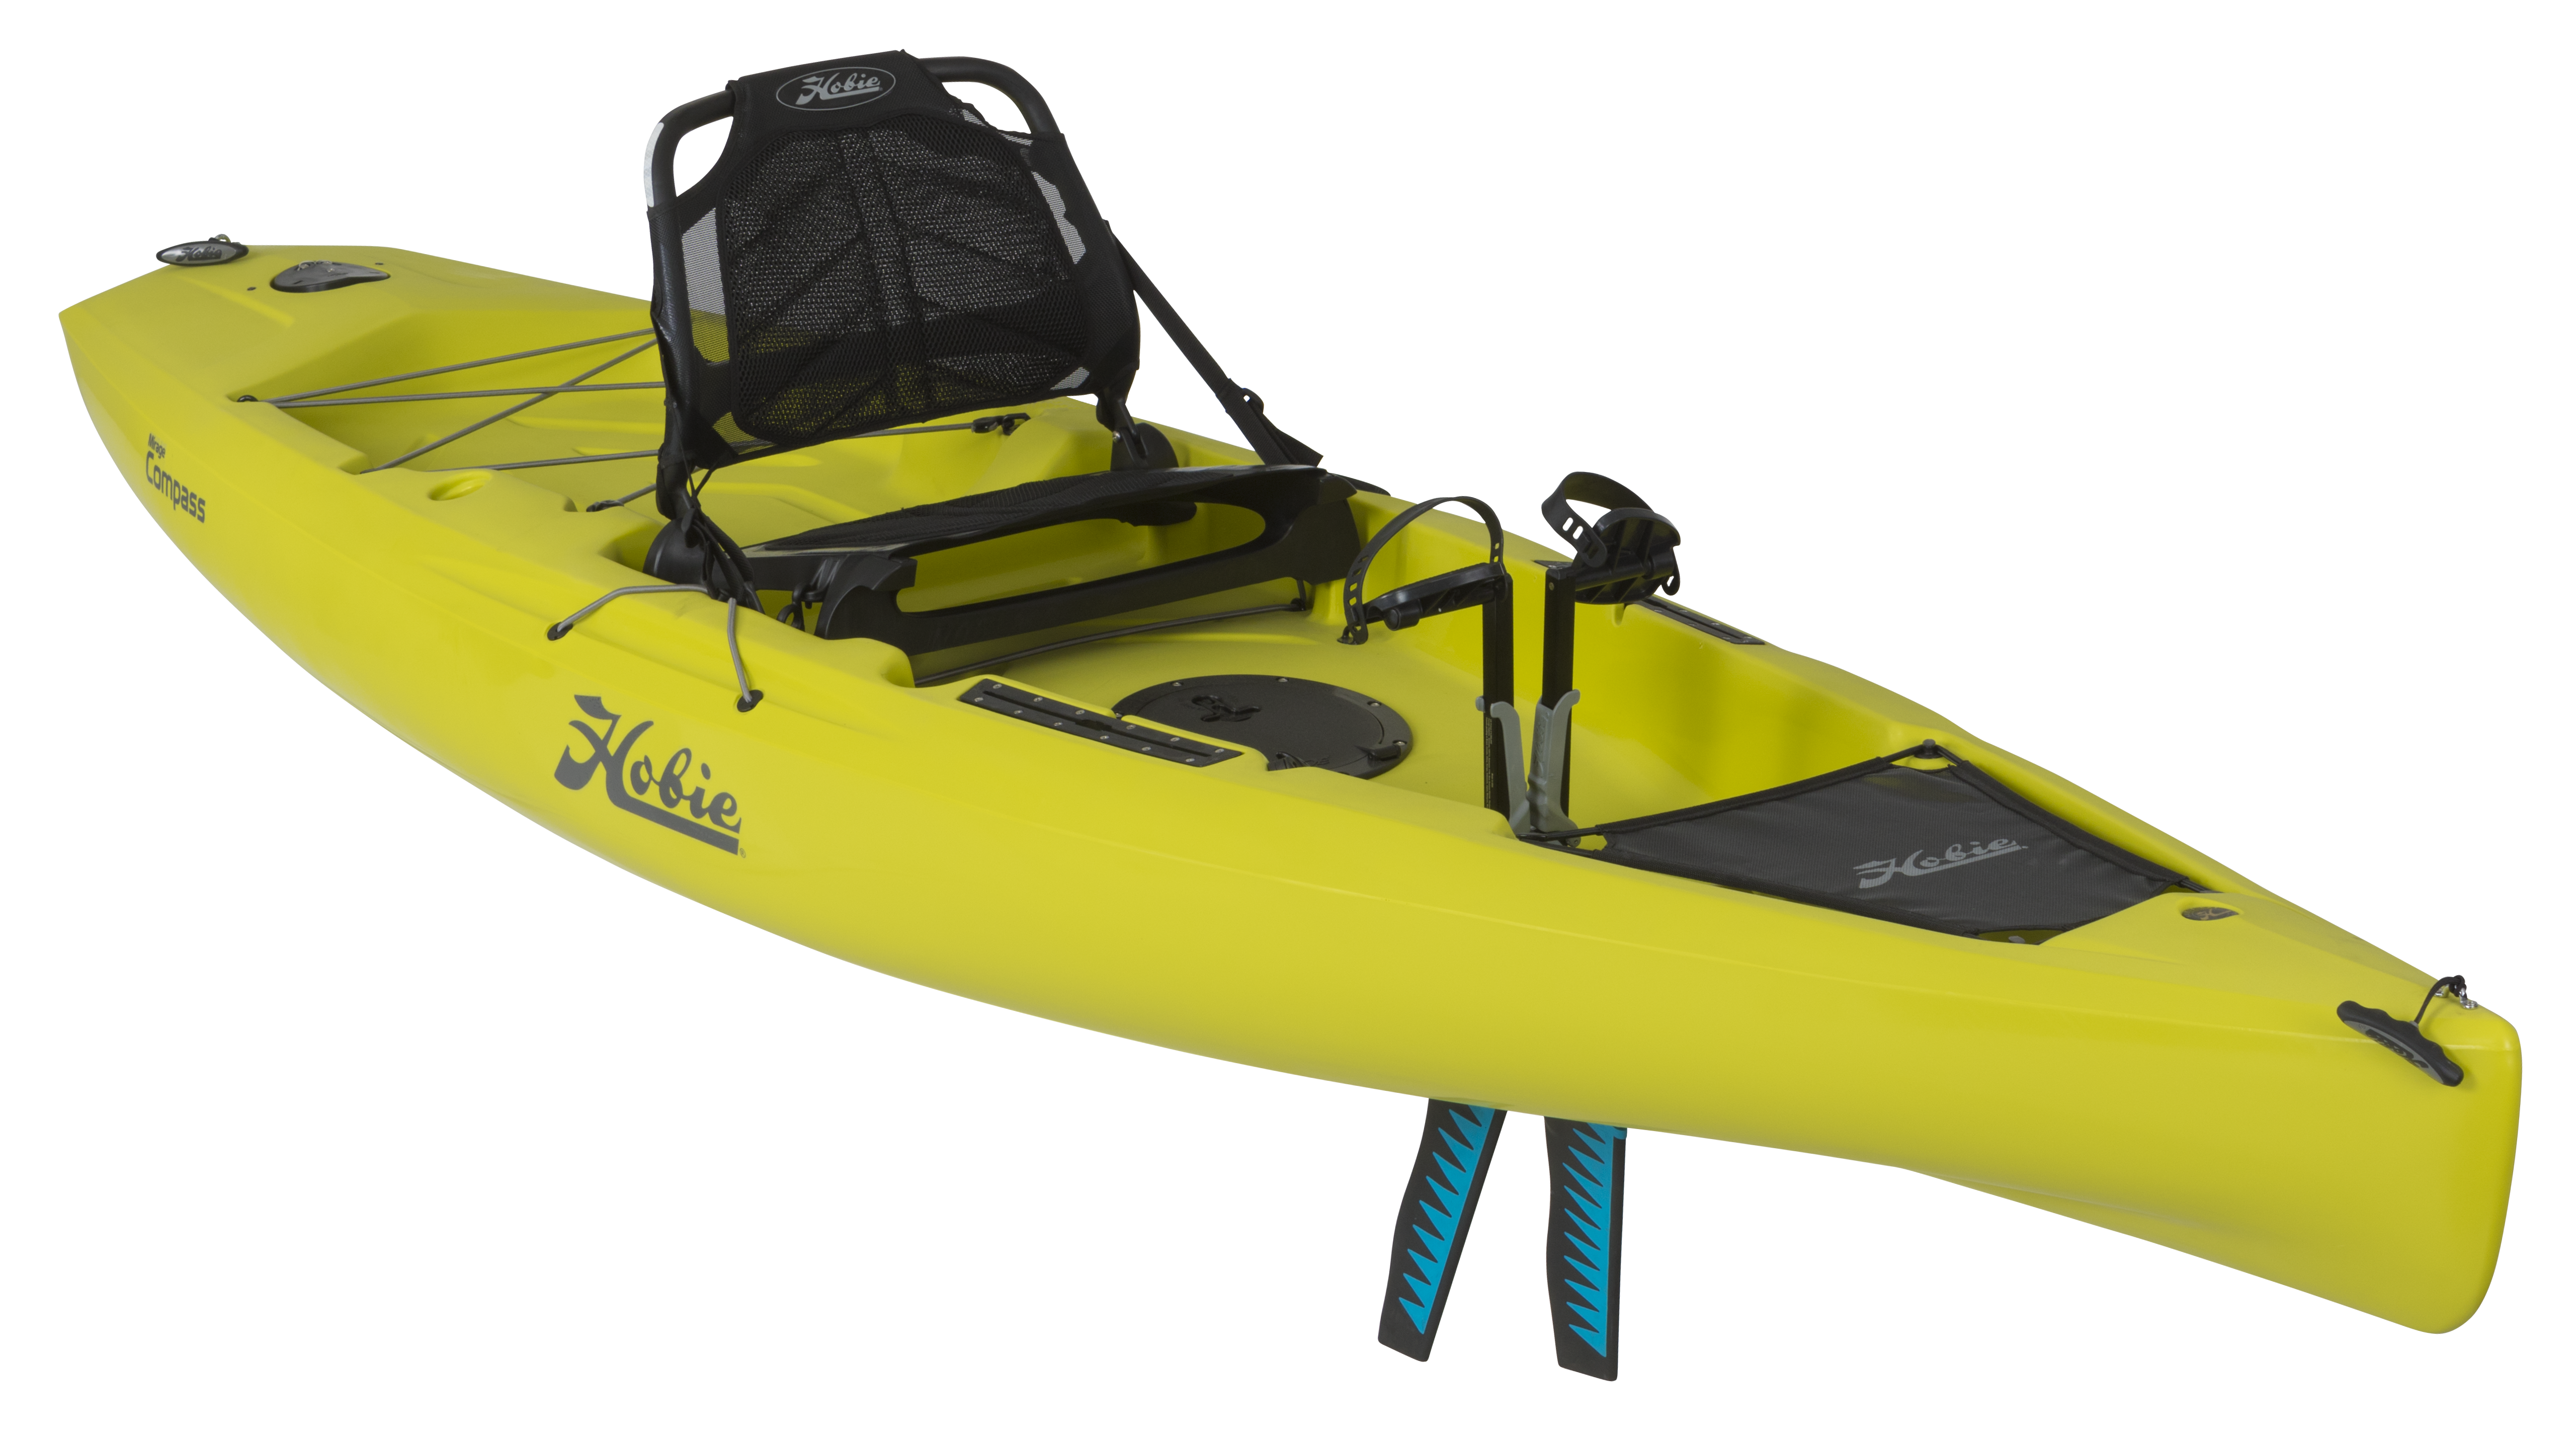 Compass Kayak